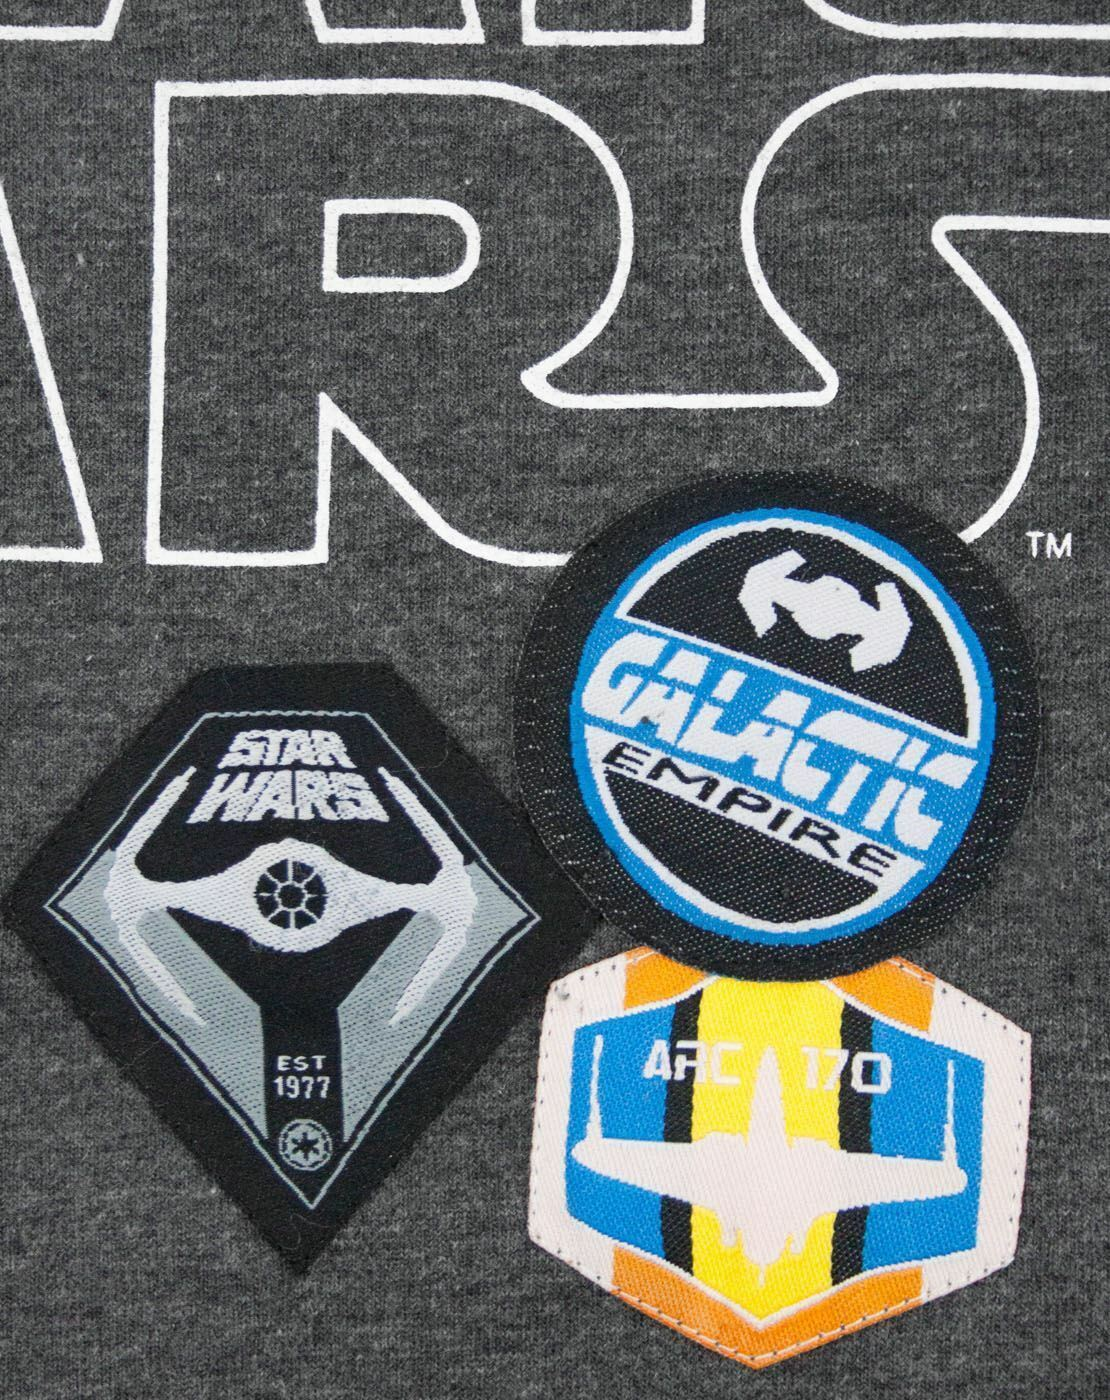 Star-Wars-Badges-Women-039-s-T-Shirt thumbnail 8